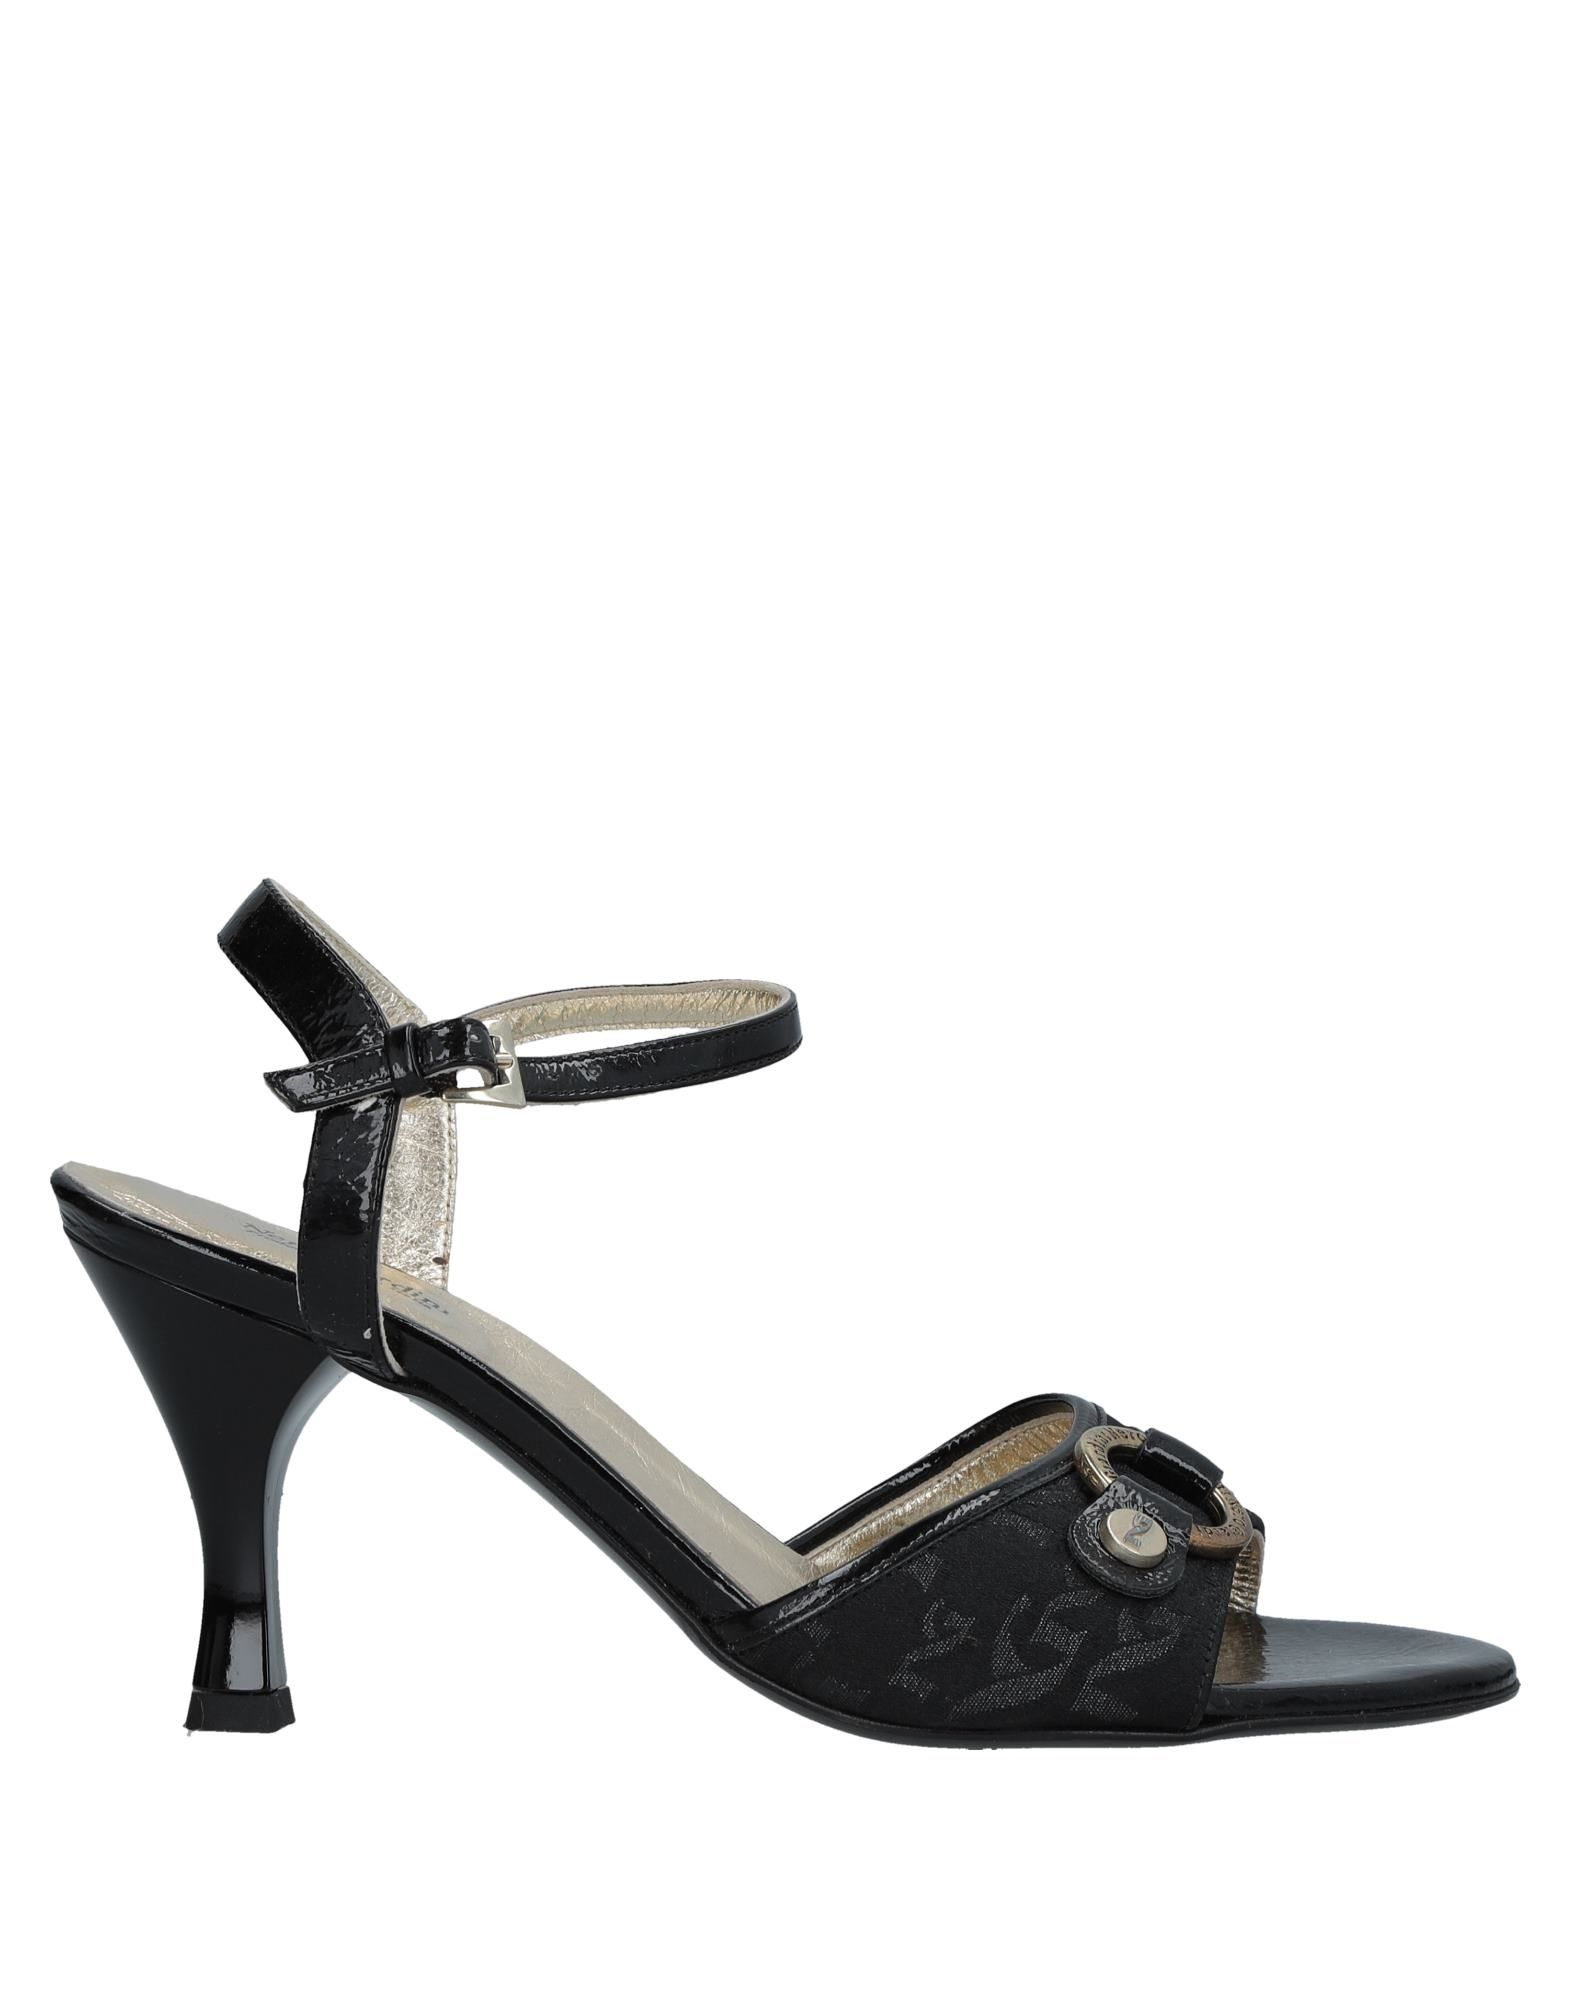 Nero Giardini Sandals - Women Nero Giardini Sandals - online on  Australia - Sandals 11522404ML f521f5